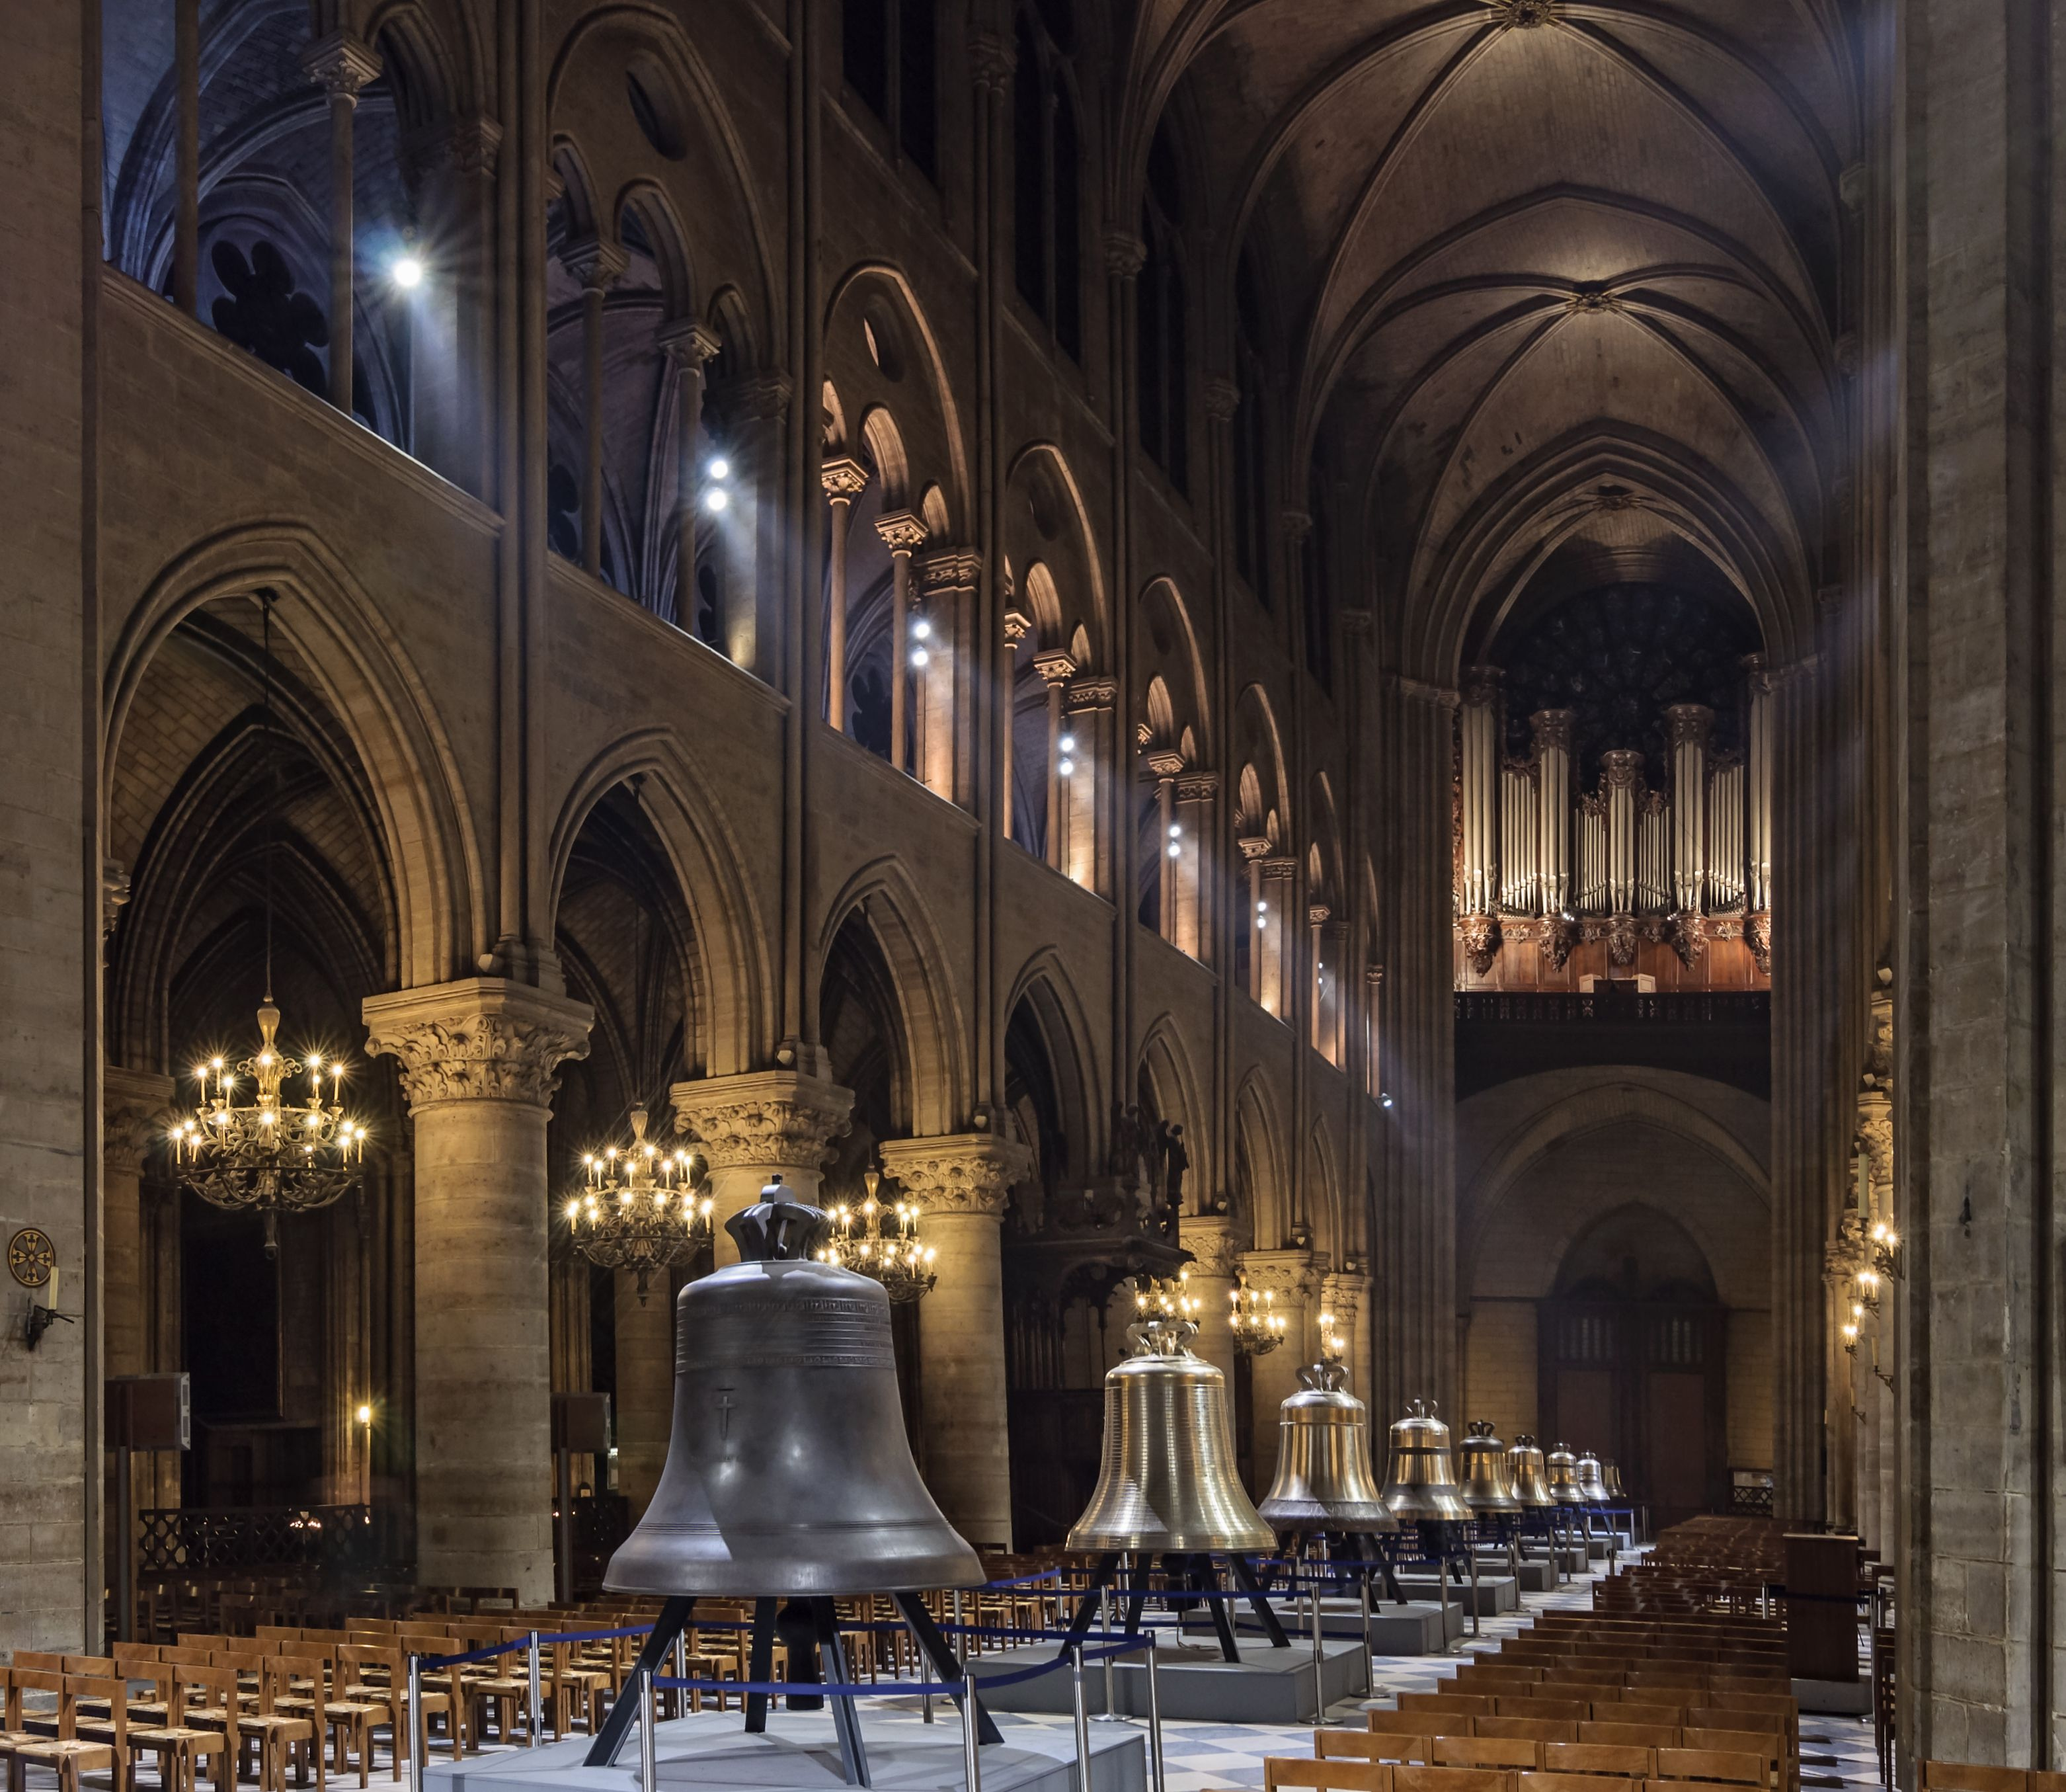 The new bells of Notre-Dame de Paris Cathedral on public display ...